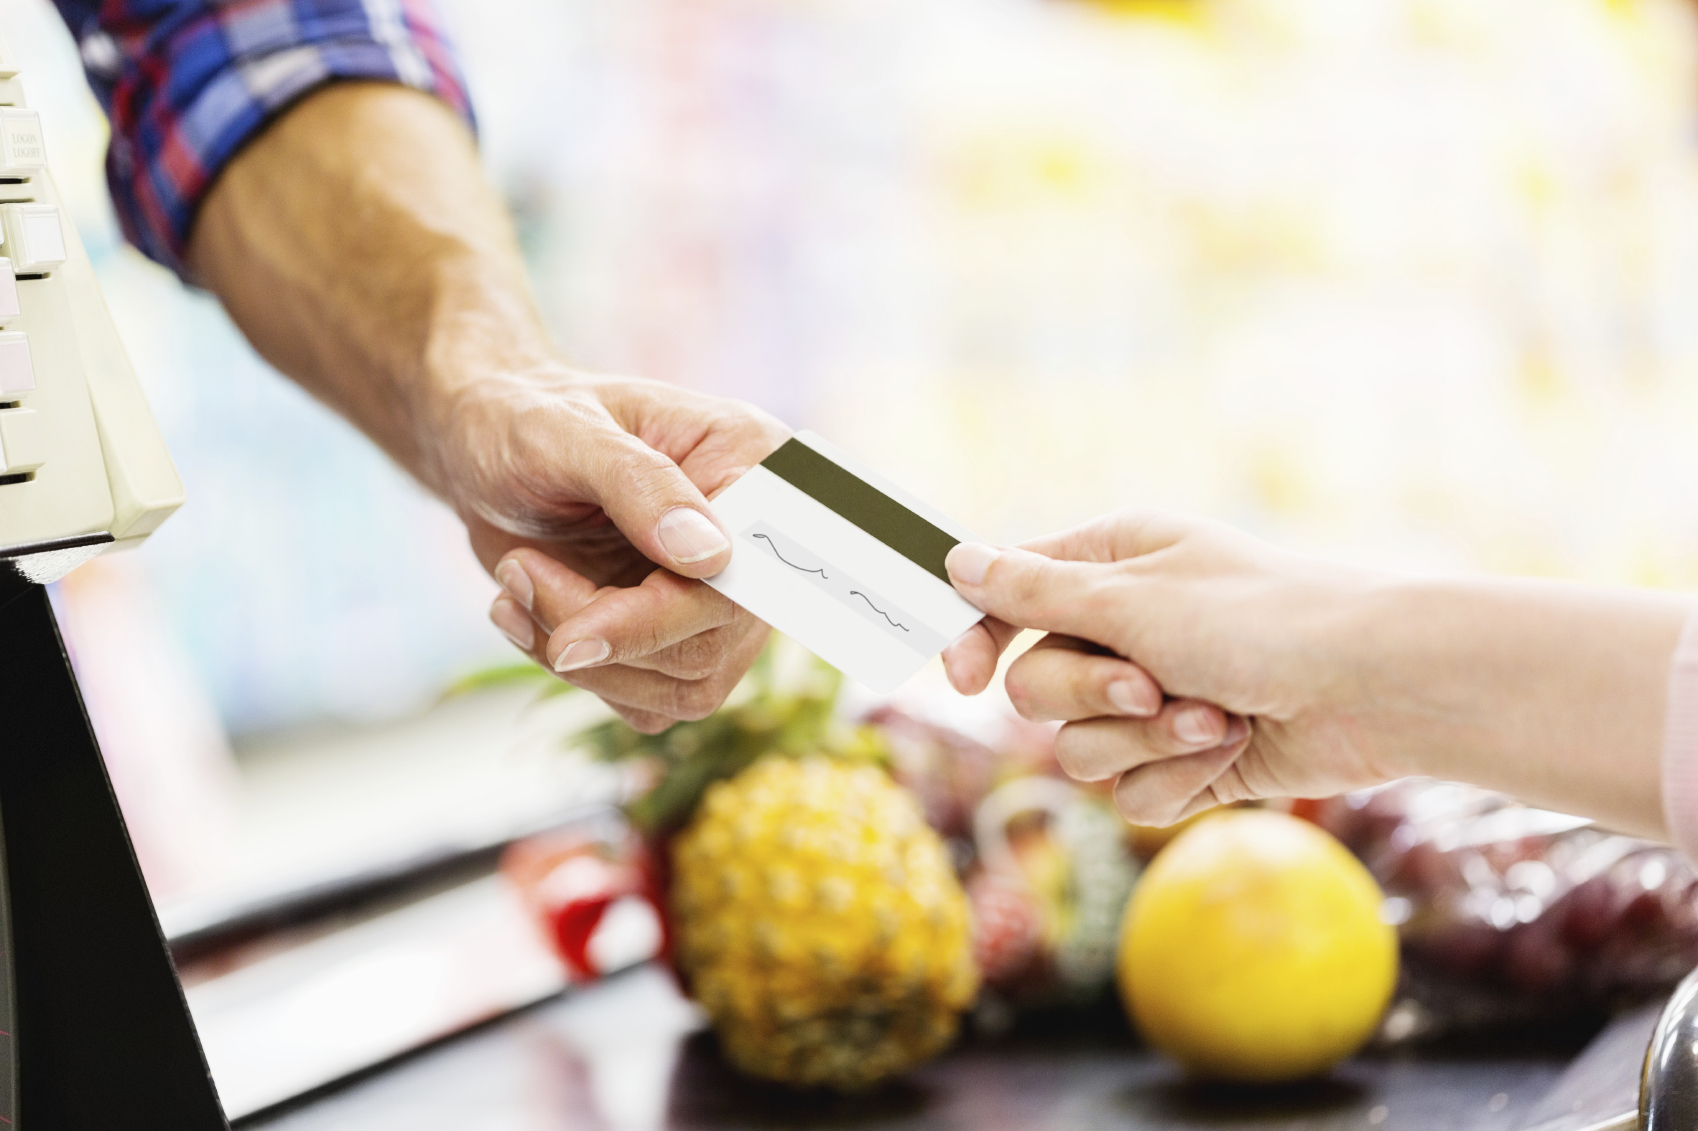 Ananas Credit clerk's hand receiving credit card from man at counter | the engage blog